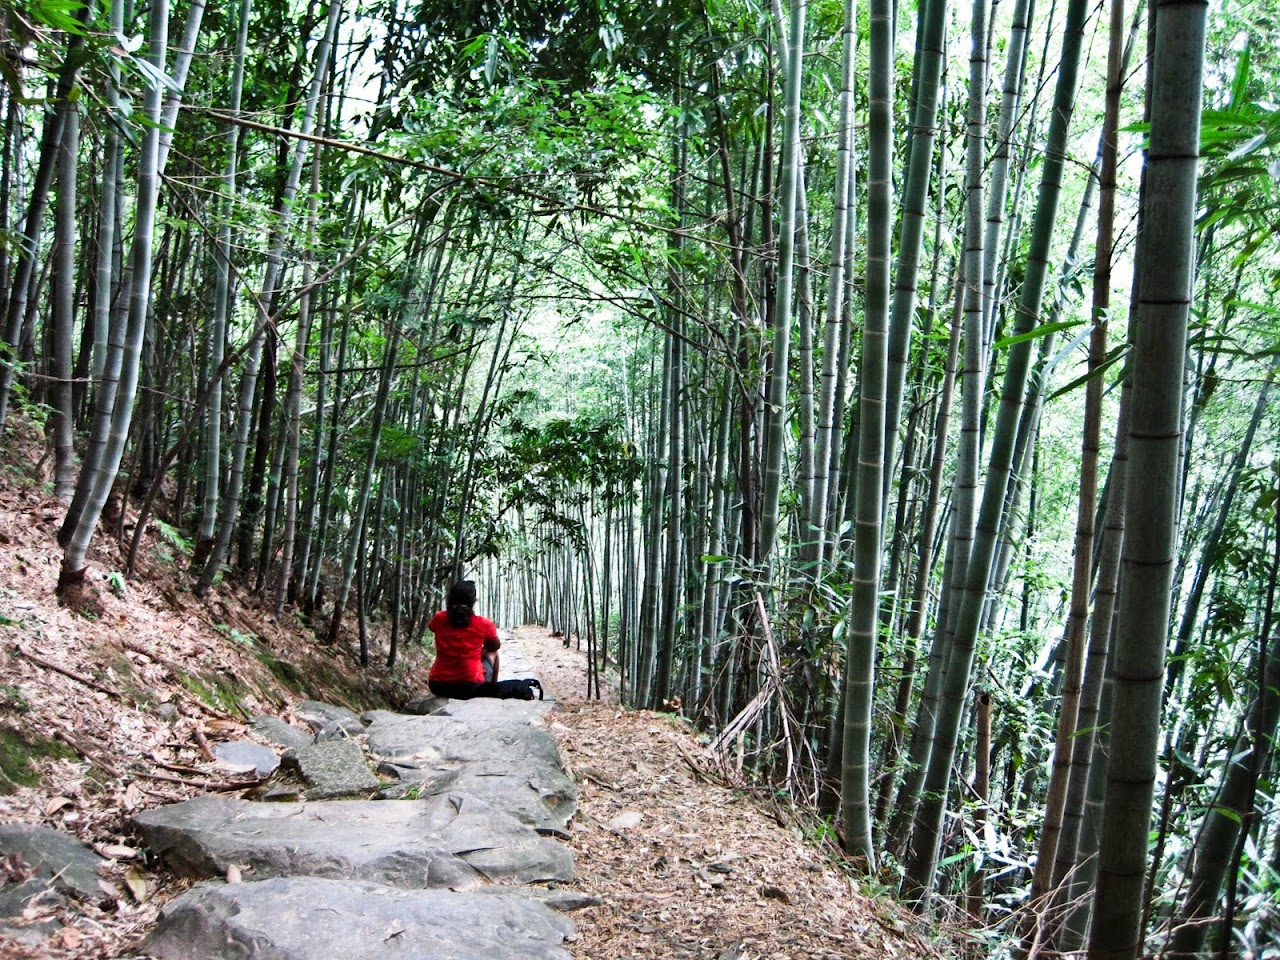 Sitting in bamboo at Huang Shan